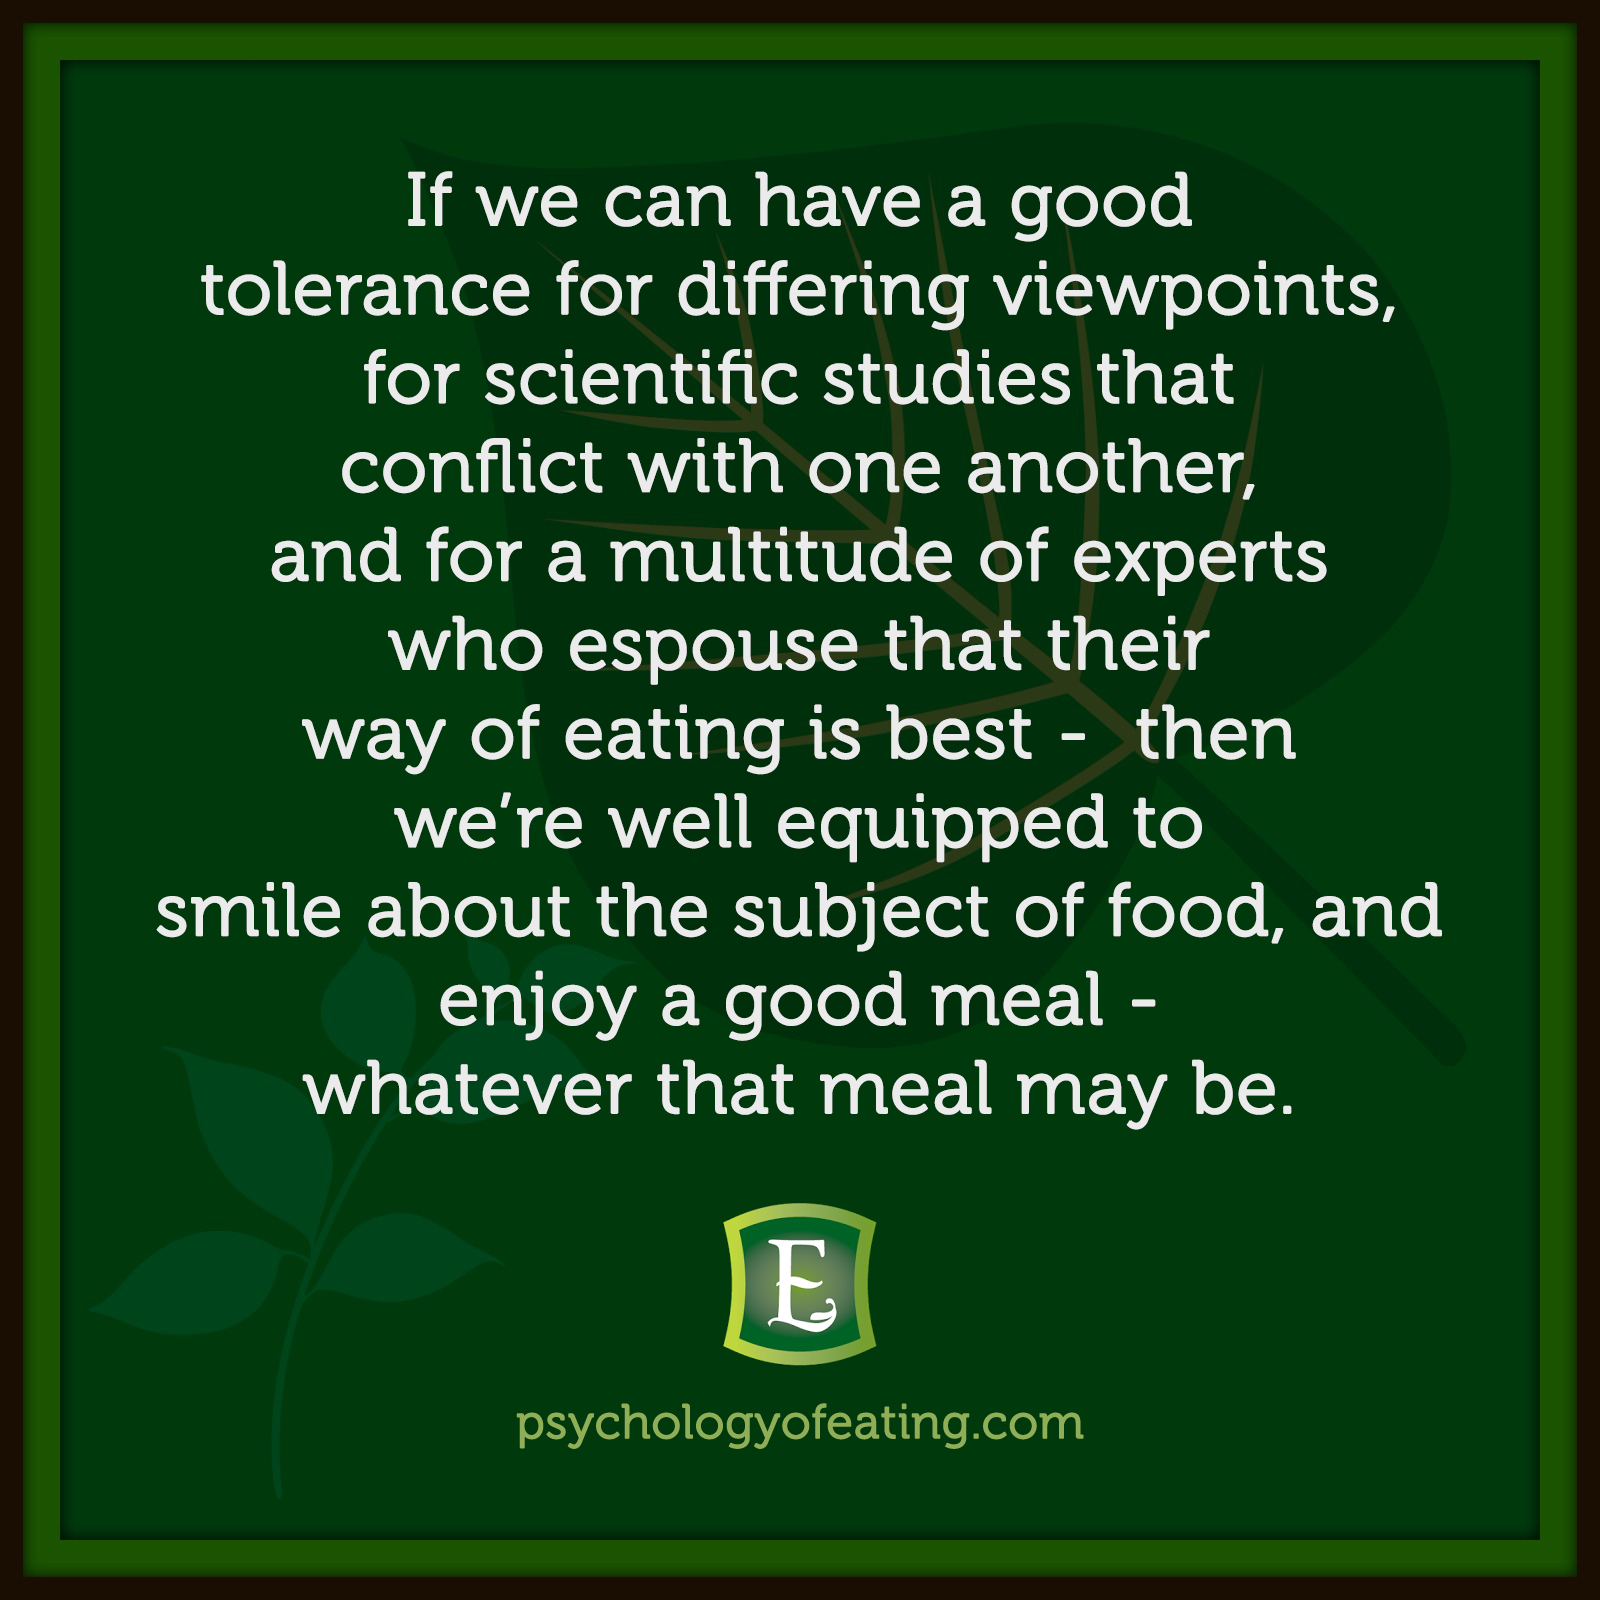 If we can have a good tolerance for differing viewpoints, for scientific studies that conflict with one another, and for a multitude of experts who espouse that their way of eating is best – then we're well equipped to smile about the subject of food, and enjoy a good meal – whatever that meal may be. #health #nutrition #eatingpsychology #IPE